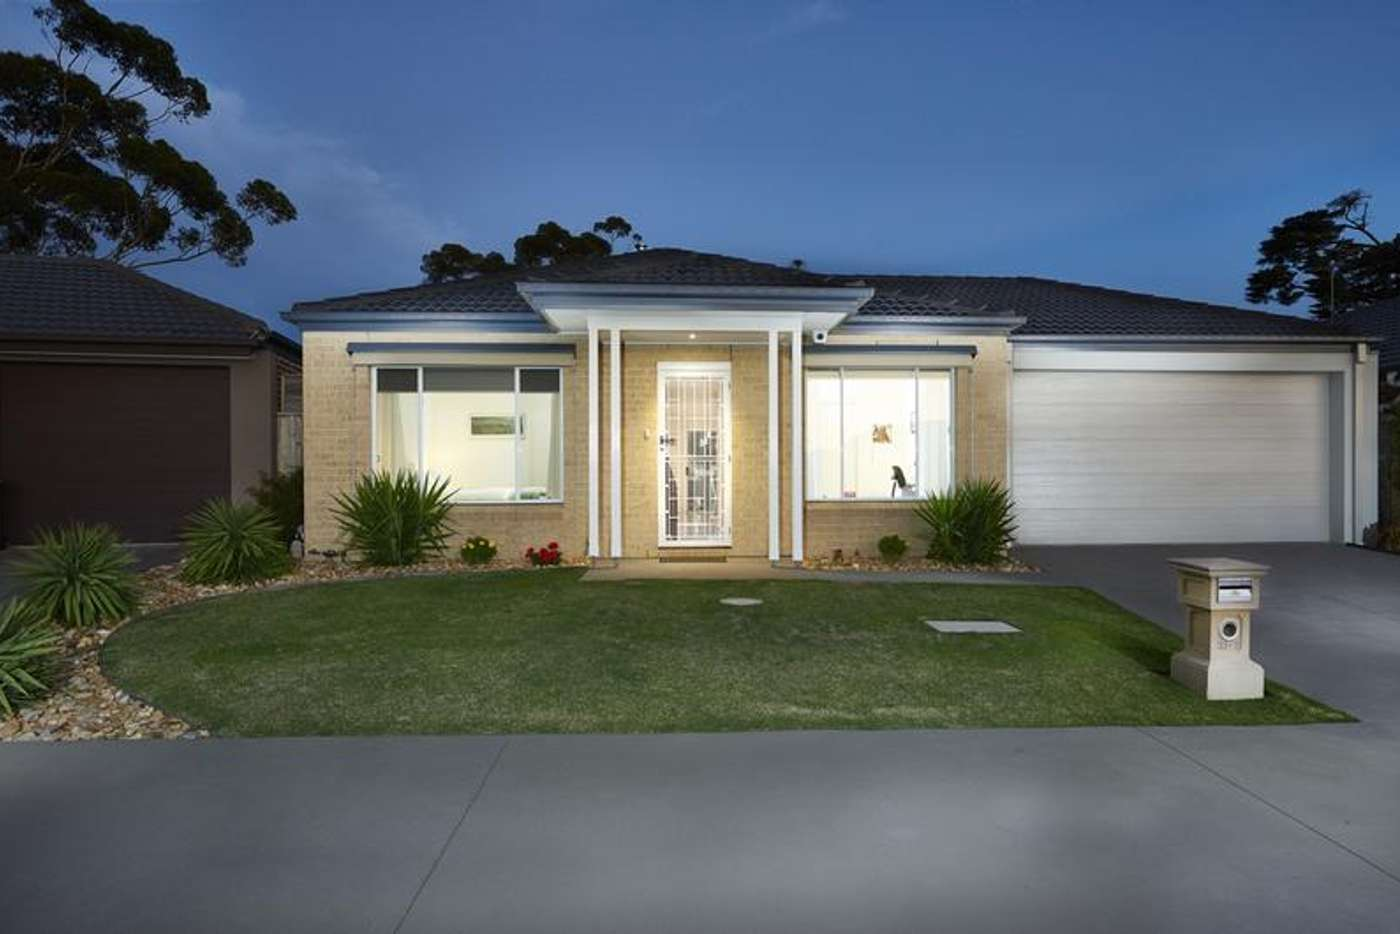 Main view of Homely unit listing, 31/3 Manor View, Pakenham VIC 3810